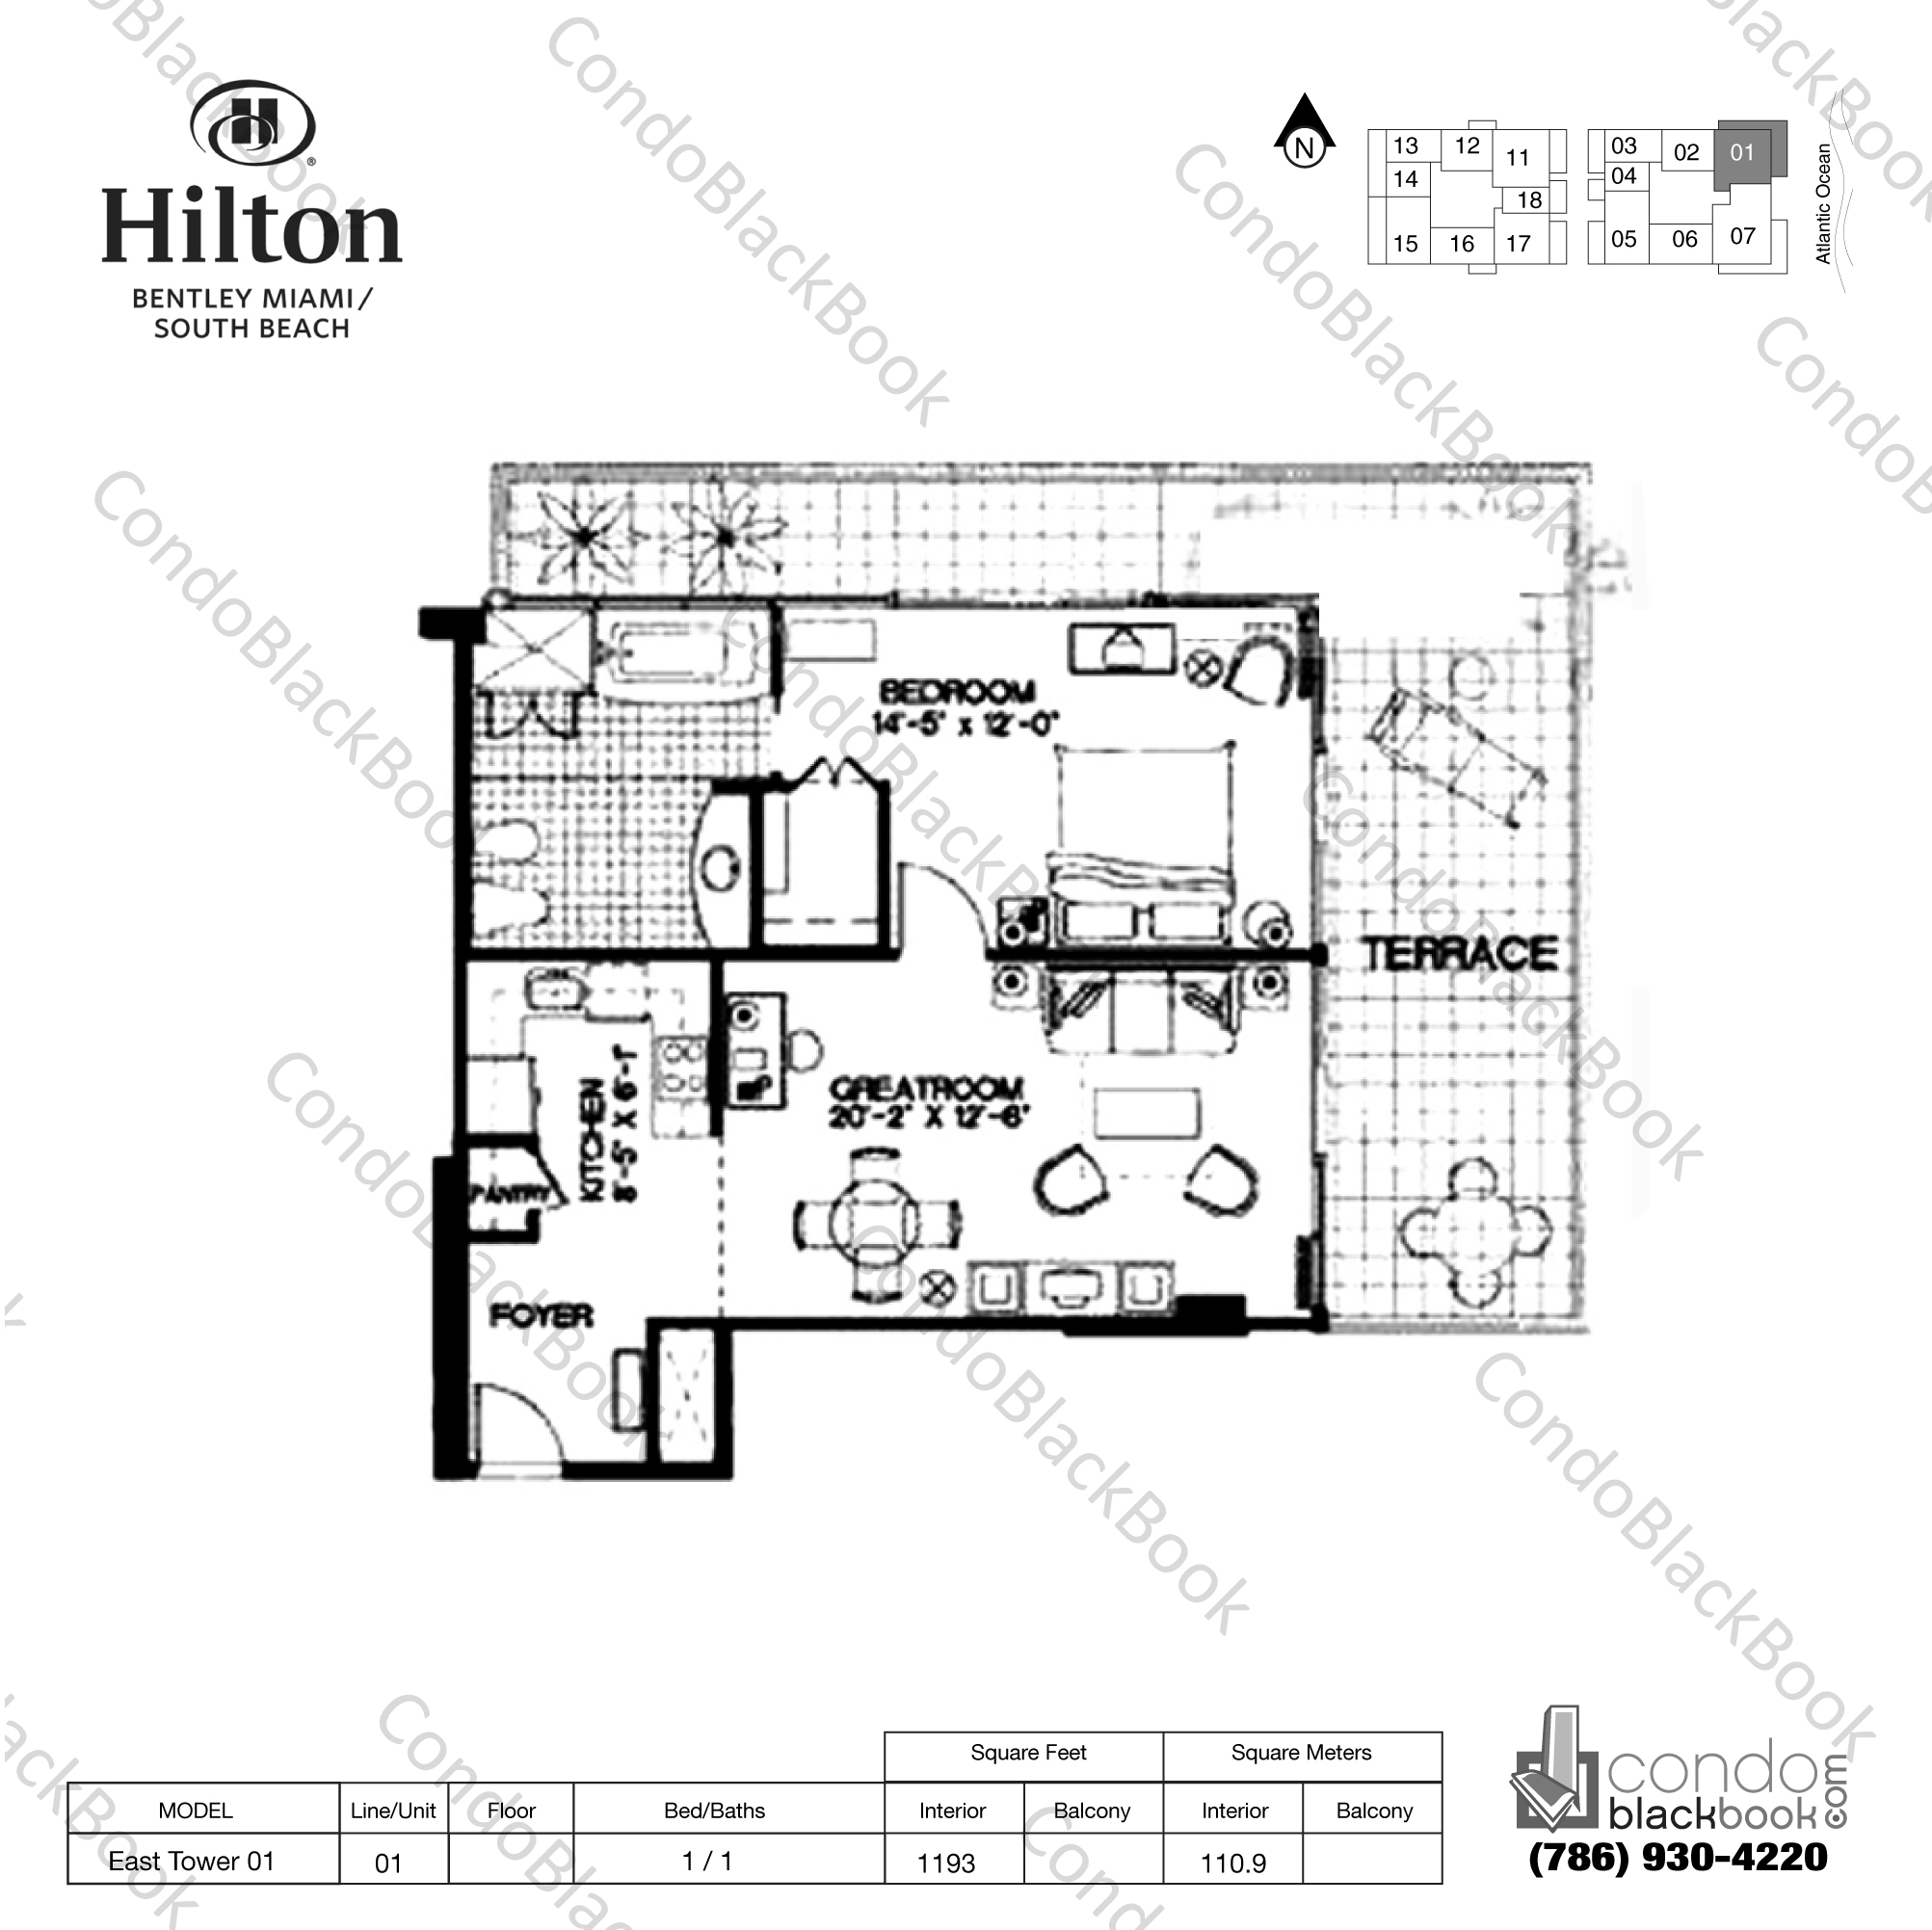 Floor plan for Bentley Beach Hilton South Beach Miami Beach, model East Tower 01, line 01, 1 / 1 bedrooms, 1193 sq ft